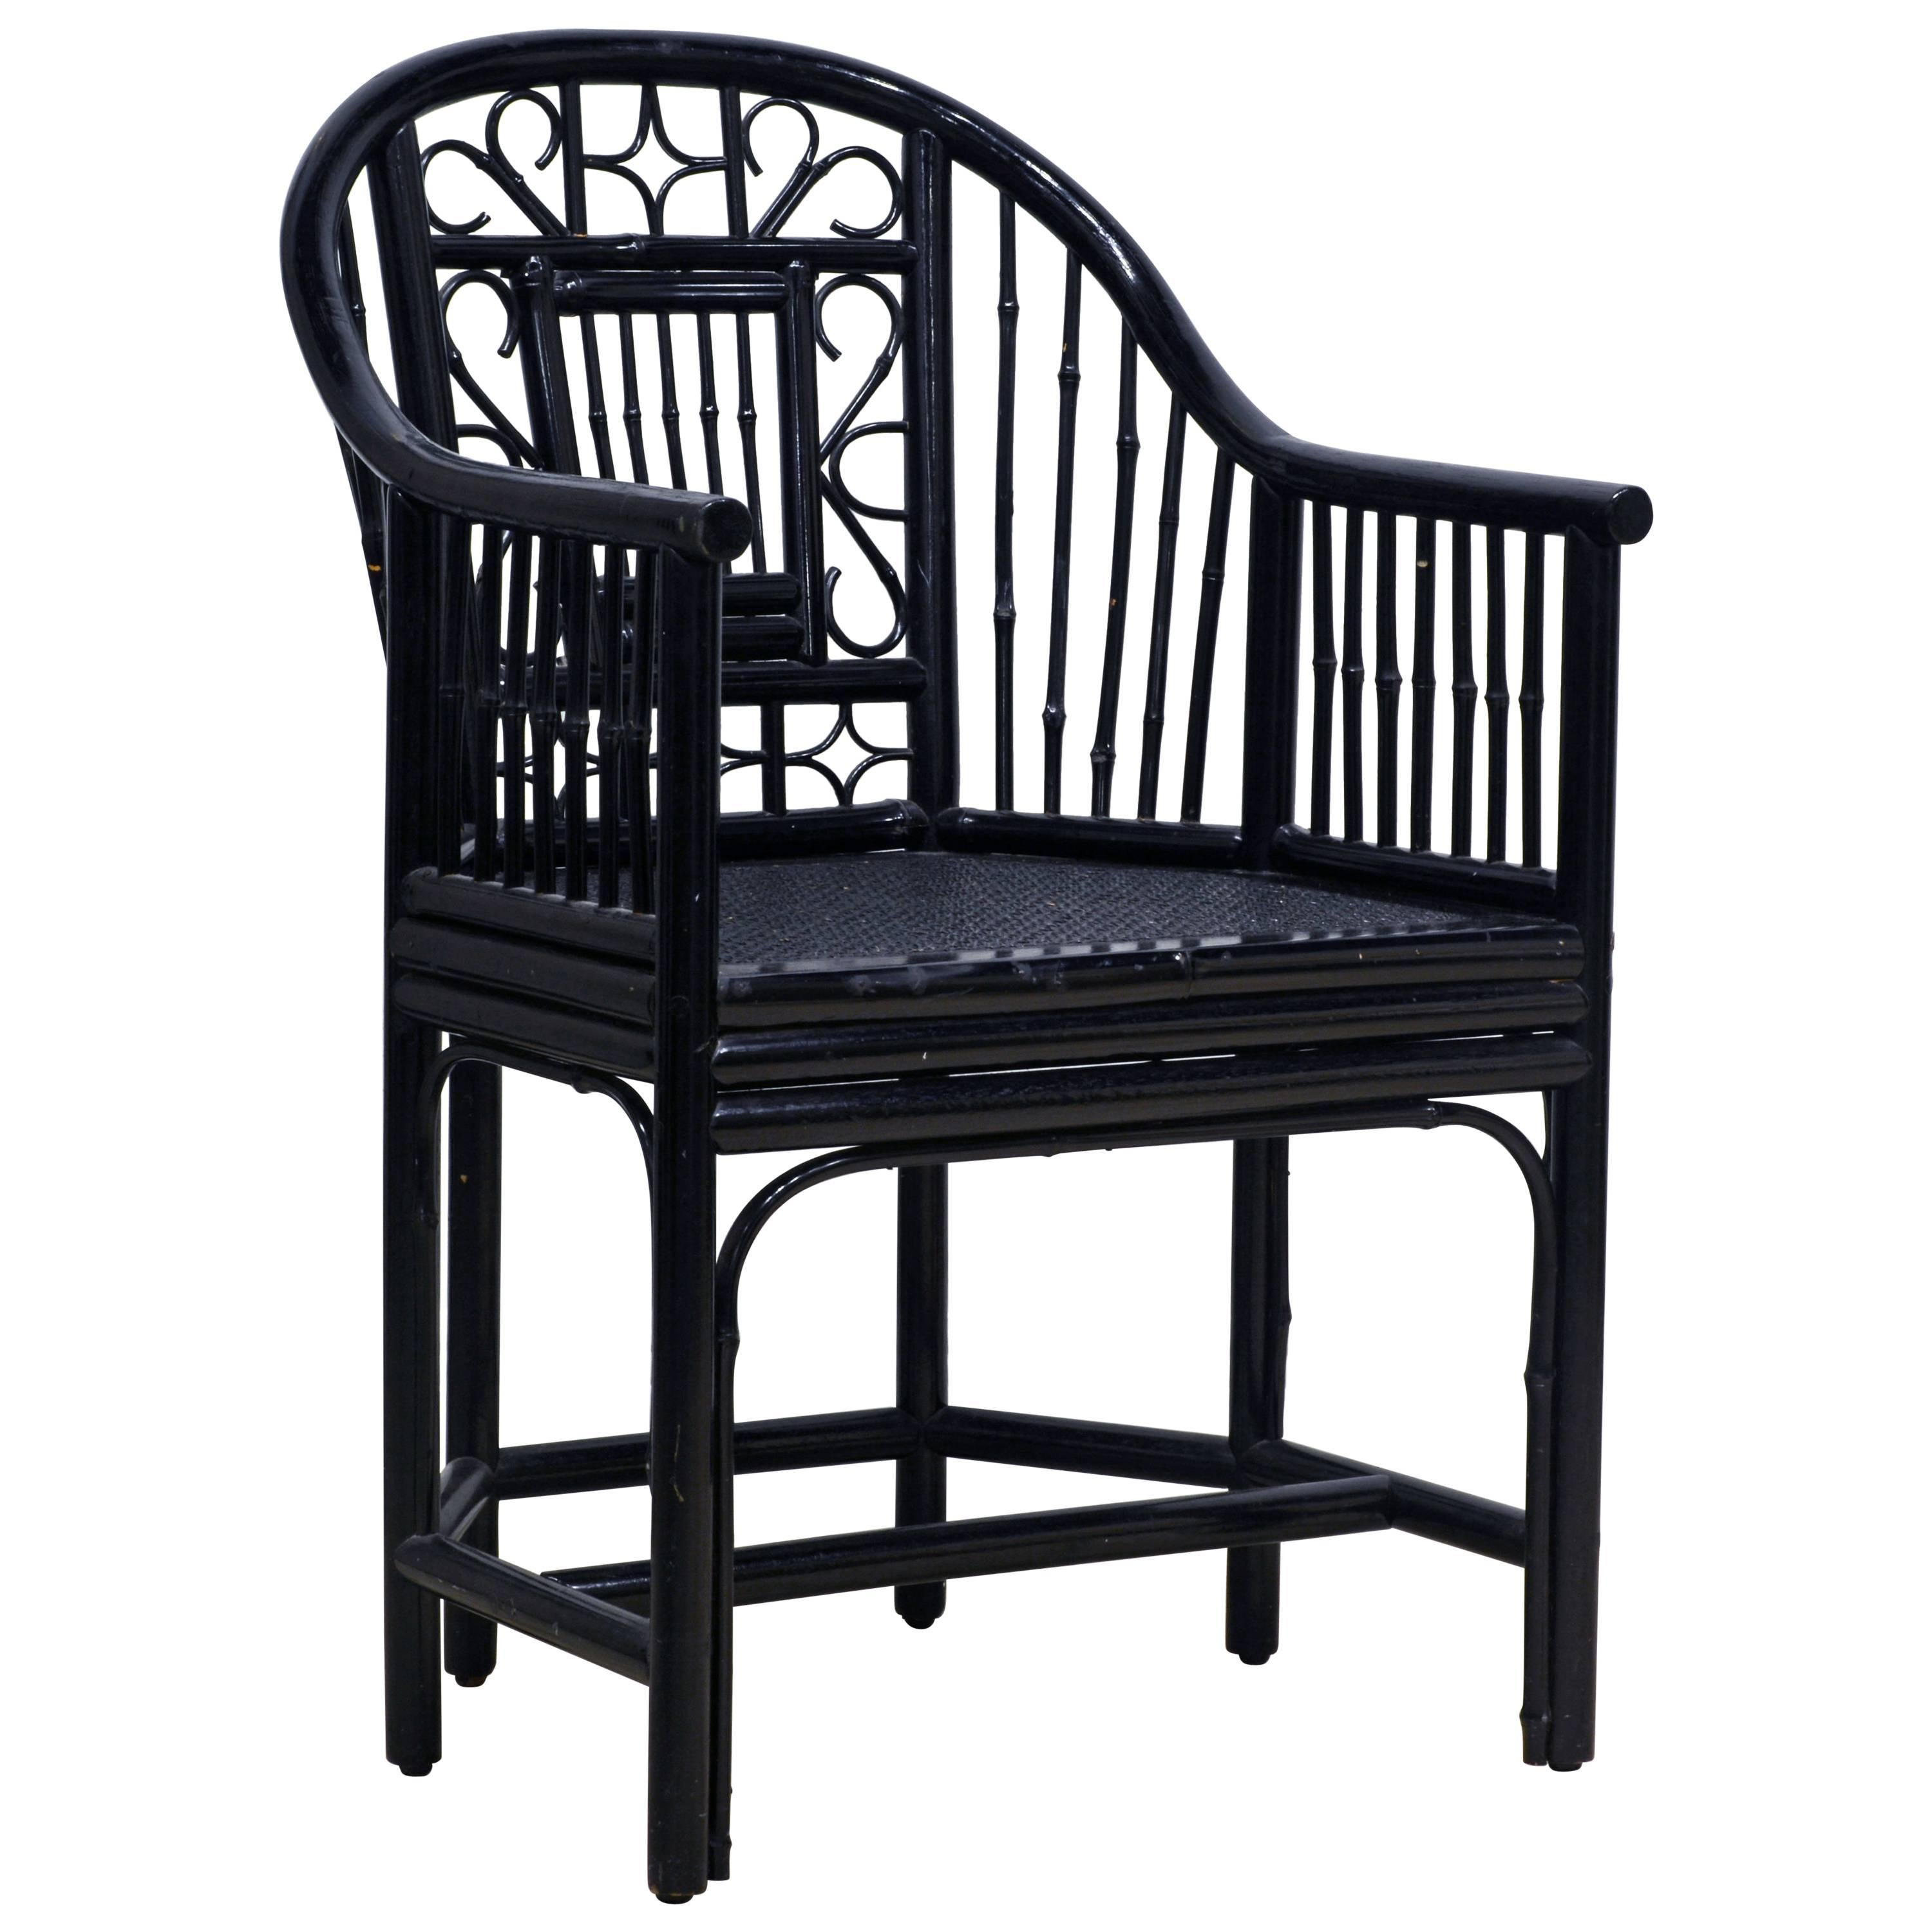 Black Chippendale Chinoiserie Brighton Pavilion Style Bamboo Rattan Armchair  For Sale